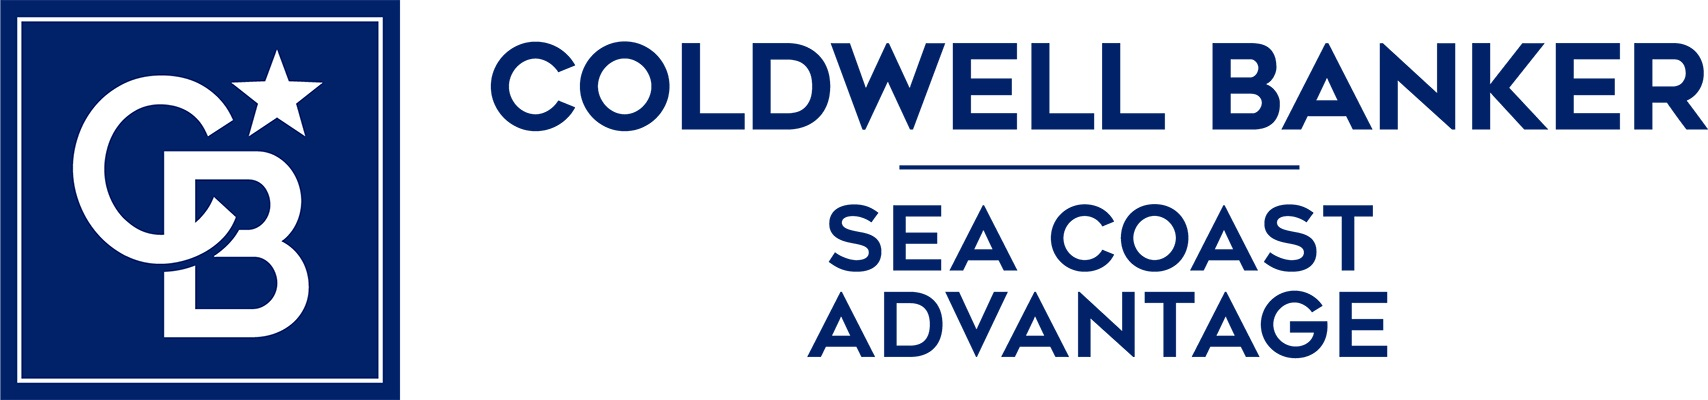 Amy Helm - Coldwell Banker Sea Coast Advantage Realty Logo